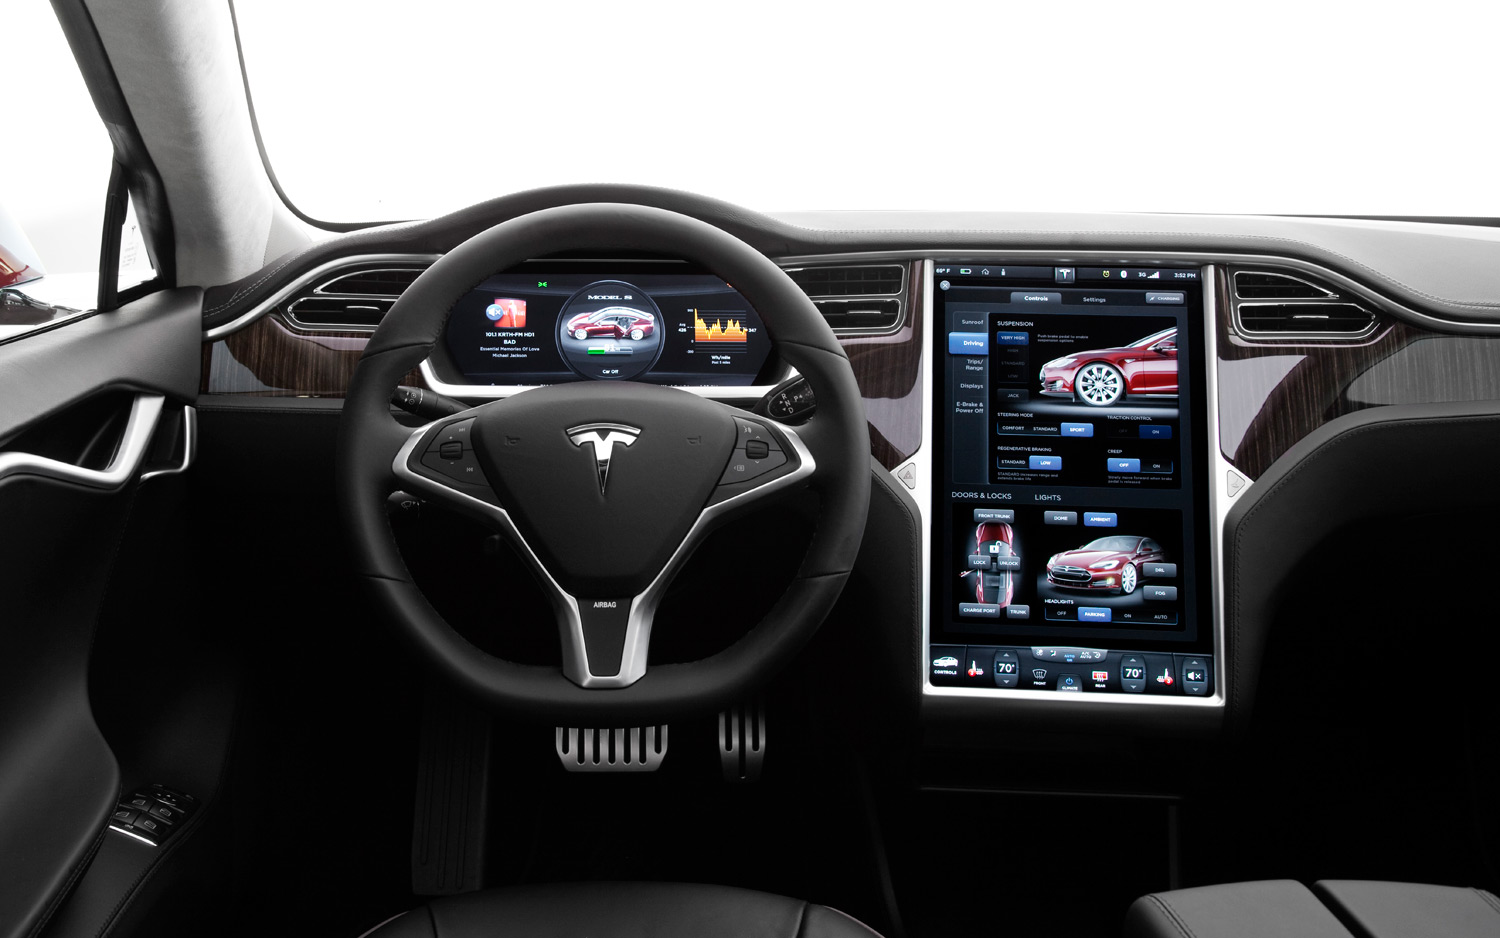 http---image.motortrend.com-f-oftheyear-car-1301_2013_motor_trend_car_of_the_year_tesla_model_s-41007851-2013-Tesla-Model-S-cockpit